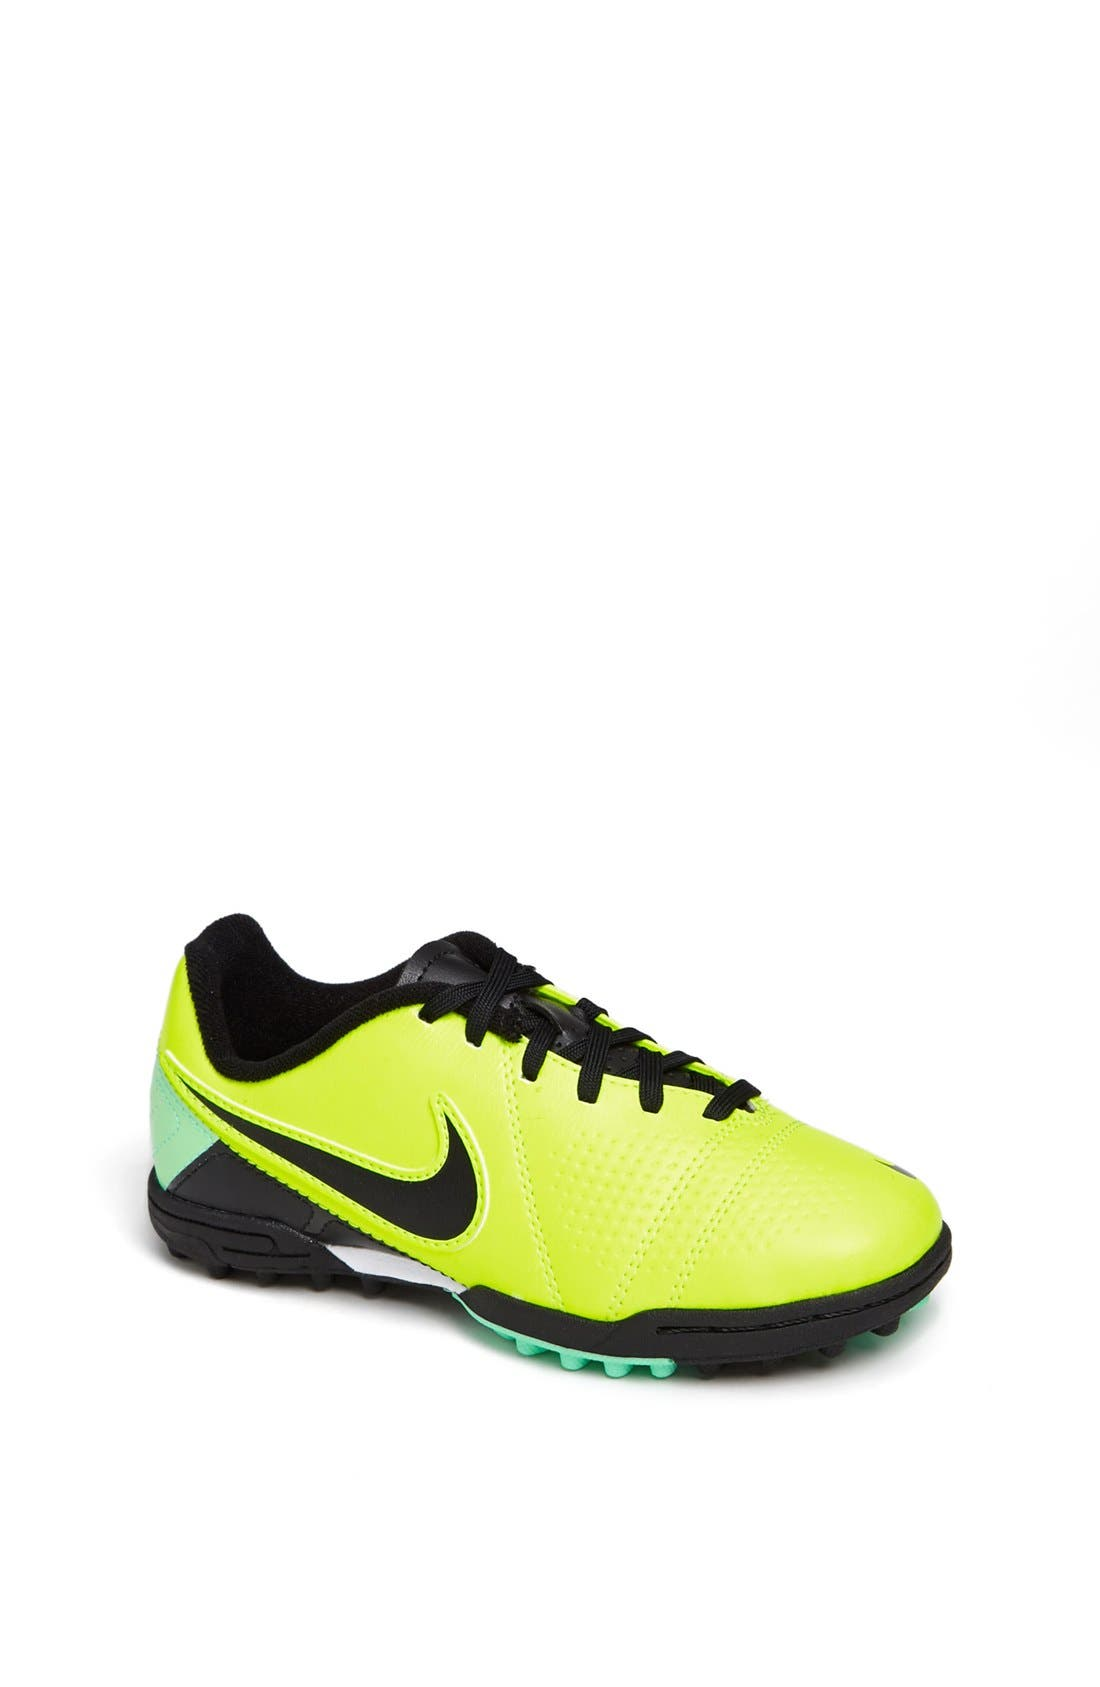 Main Image - Nike 'CTR 360 Libretto III' Indoor Soccer Cleat (Toddler, Little Kid & Big Kid)